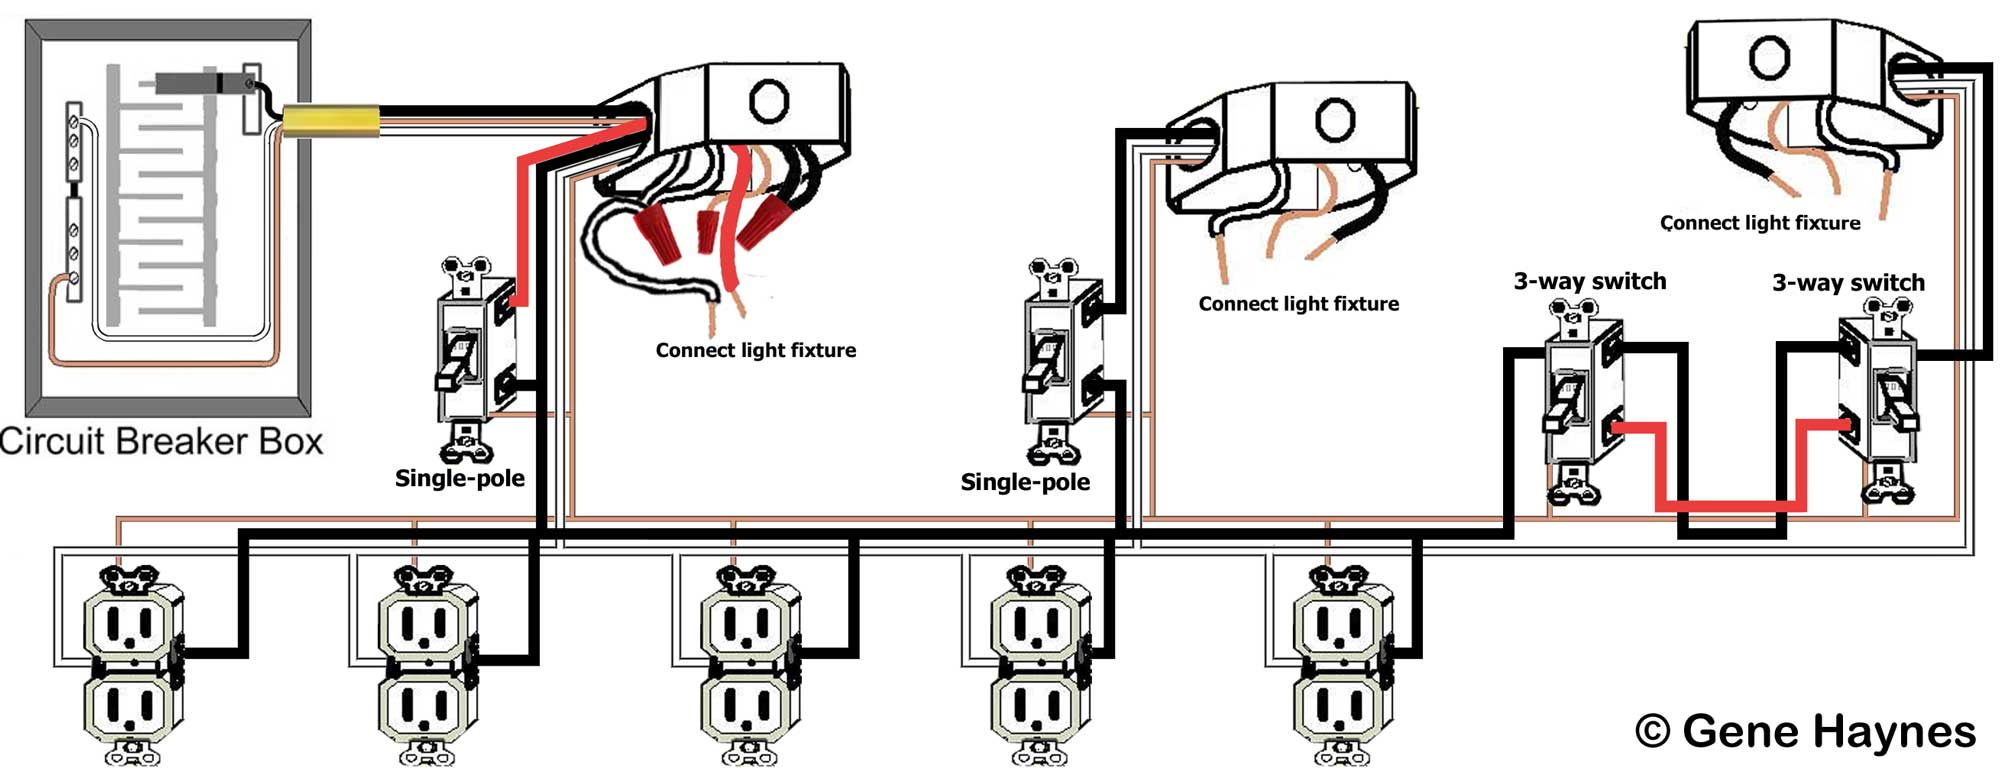 Basic Home Wiring Guide - Data Wiring Diagram Detailed - Basic House Wiring Diagram